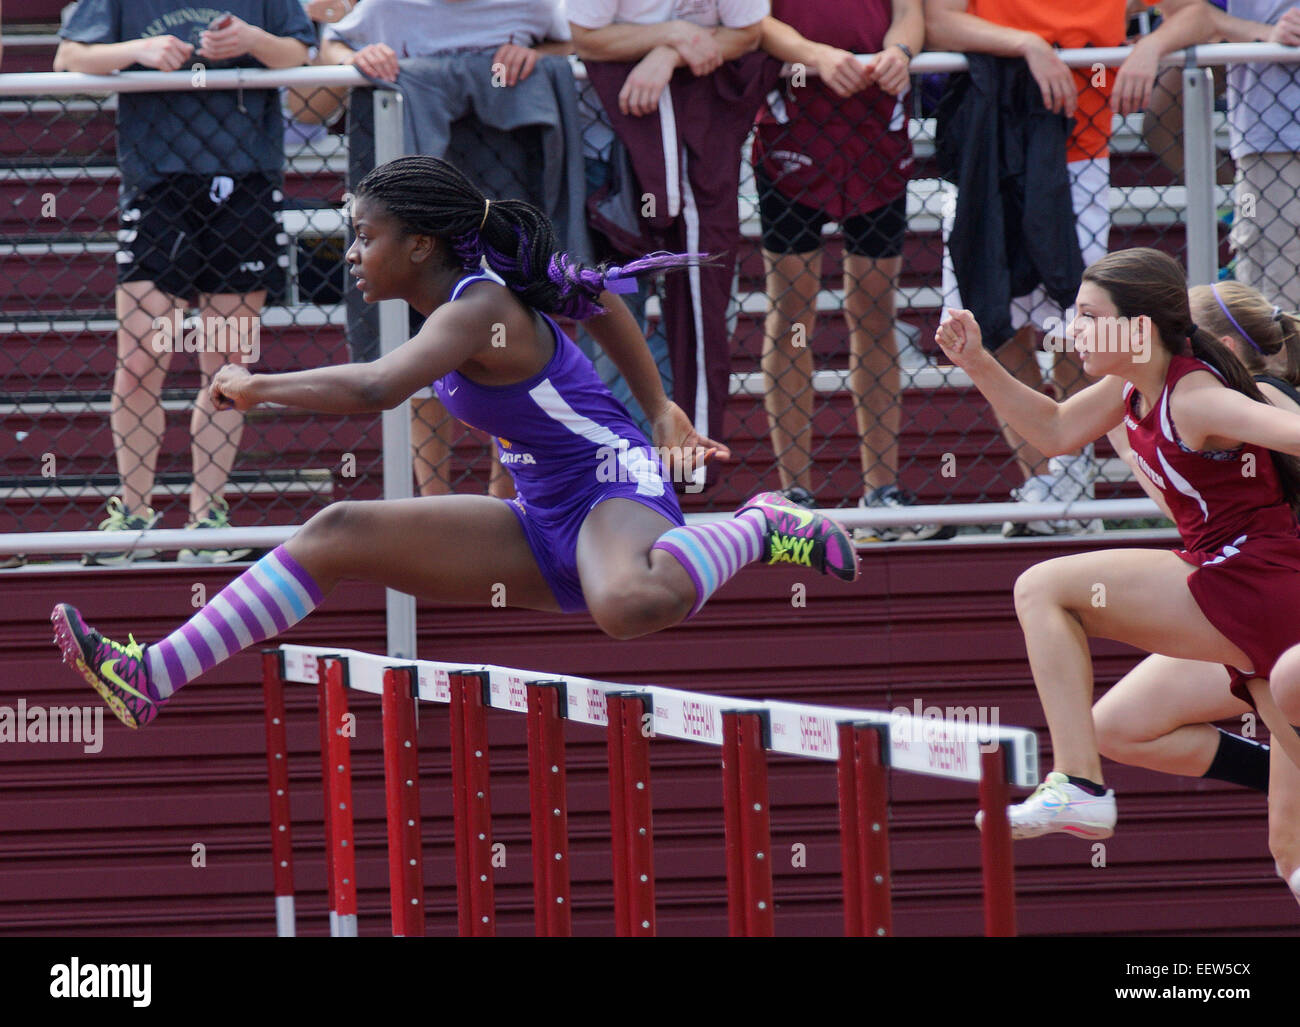 Action from the SCC track meet in Wallingford, CT. USA - Stock Image